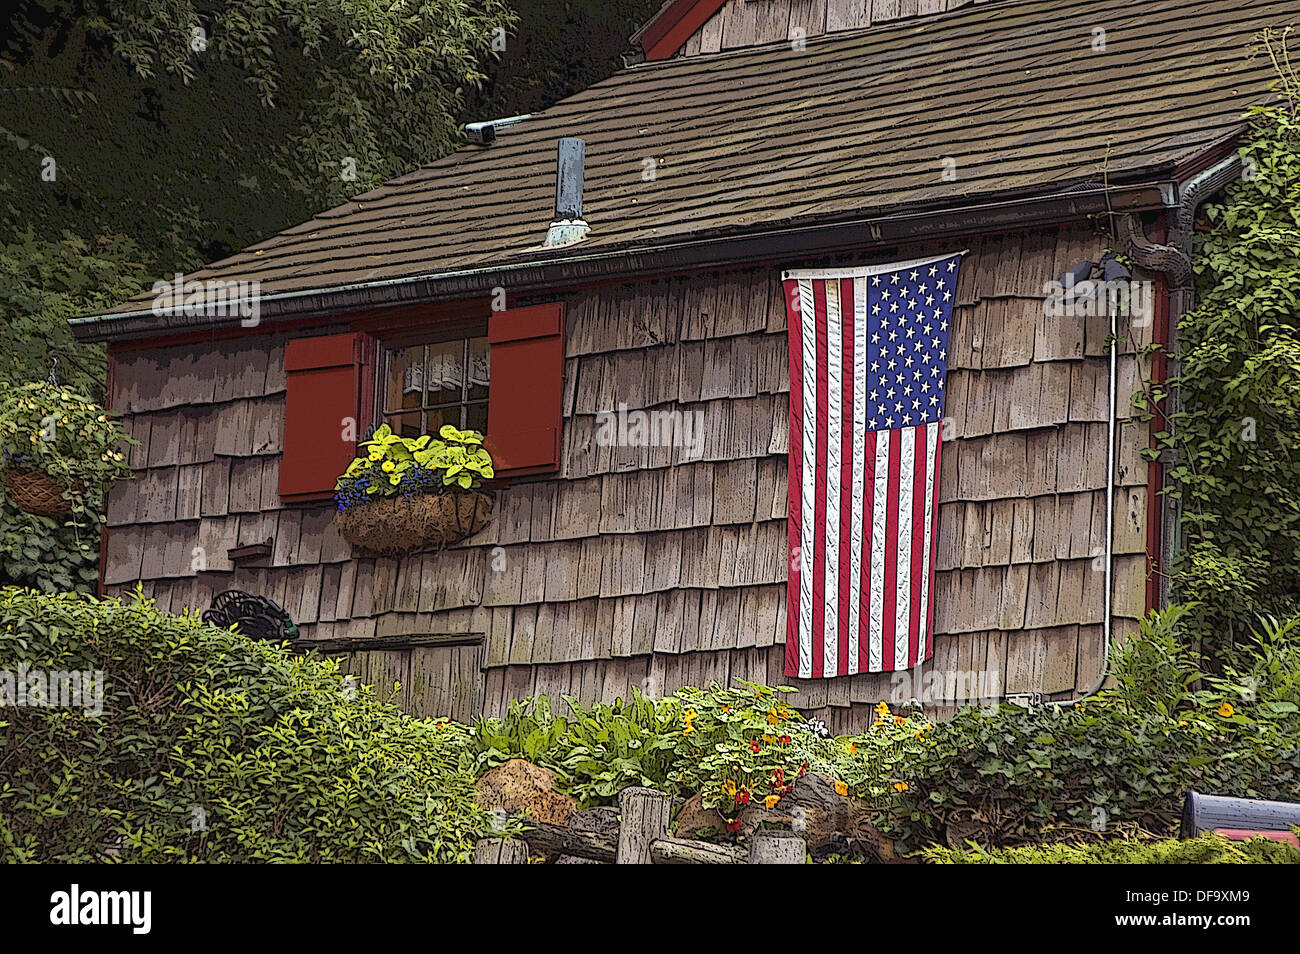 American Flag draped on the side of an historic home, at Independence Day USA Holiday, July 4th. New York. USA. Stock Photo